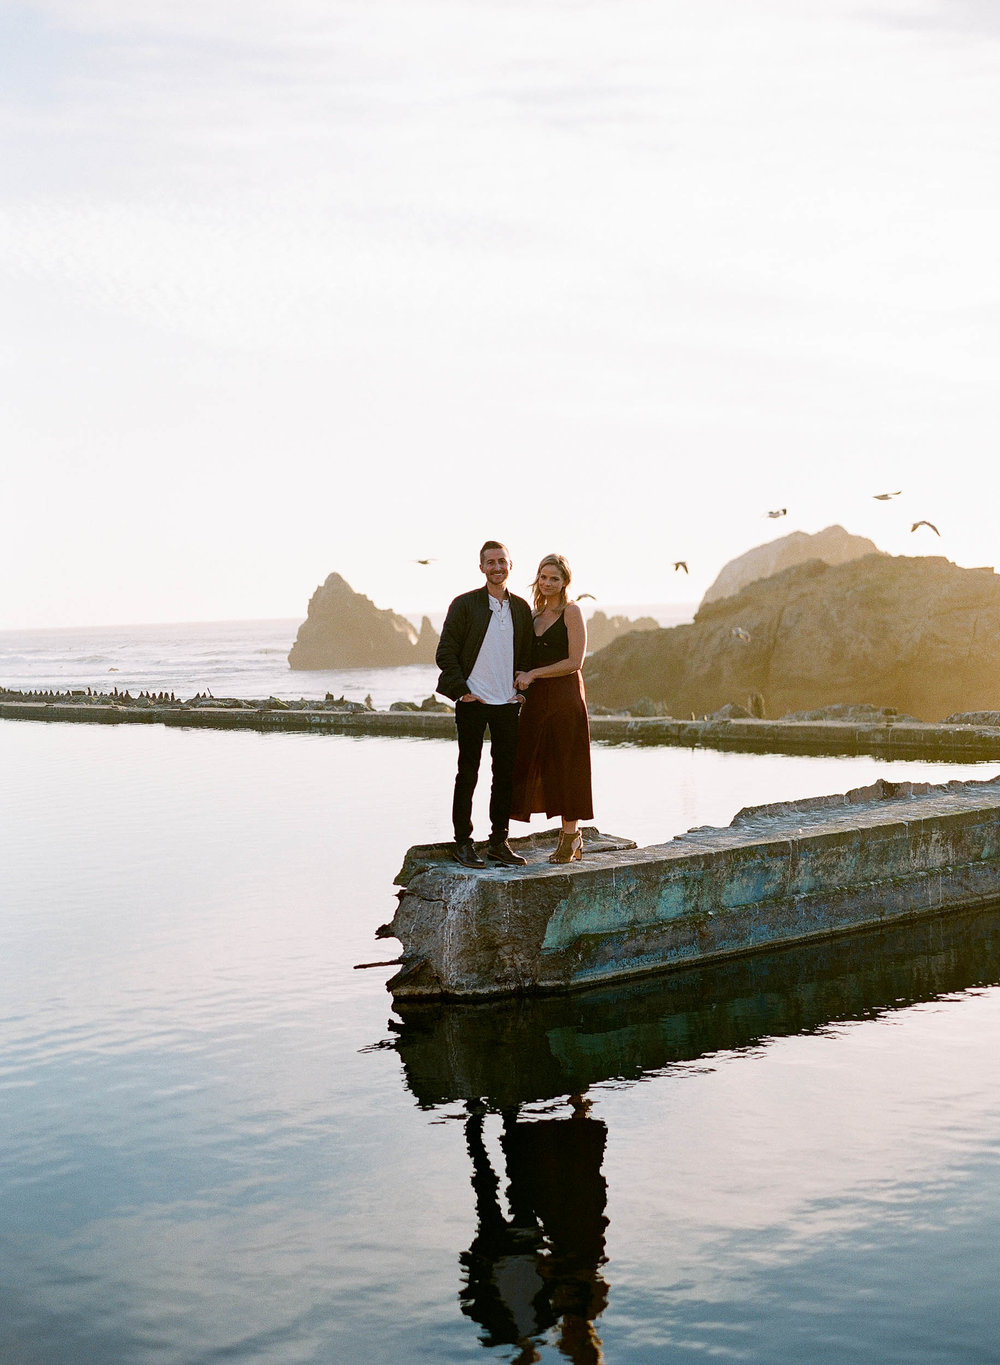 021618_D+K Sutro Baths Engagement_Buena Lane Photography_F400+1_0034.jpg